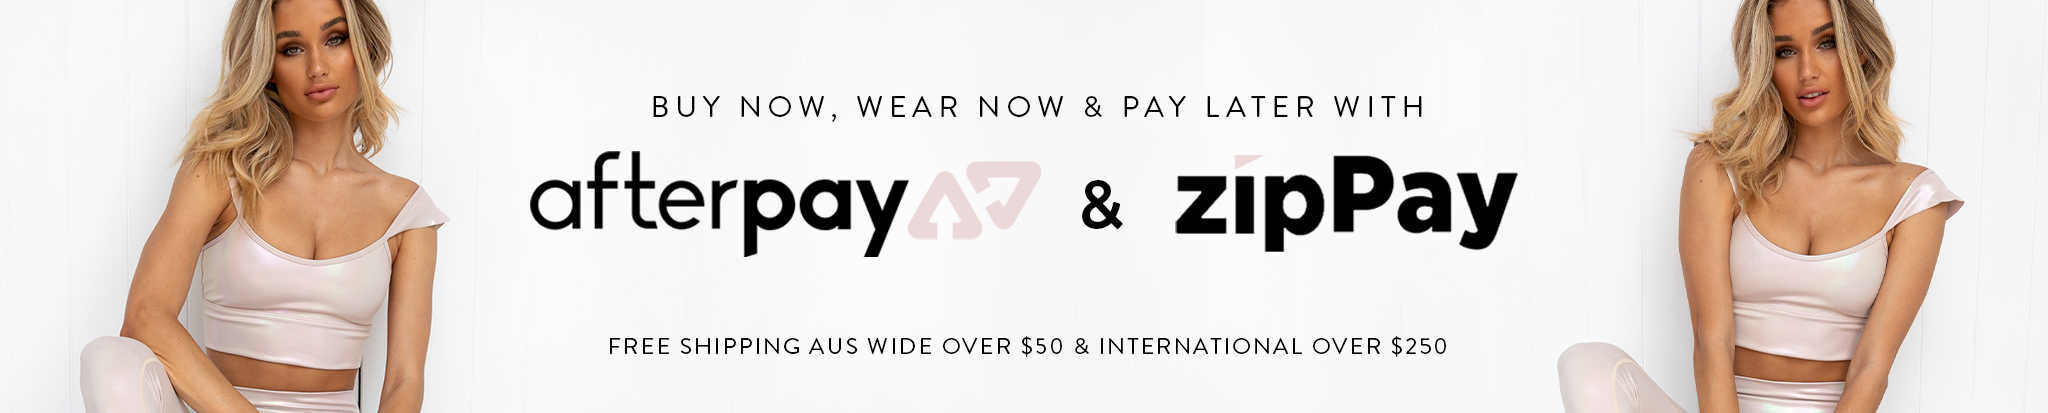 Pure Dash - Womens Activewear Online Australia Banner | Buy Now, Wear Now & Pay Later with afterpay and zipPay. Free shipping Aus wide over $50 and internationl over $250